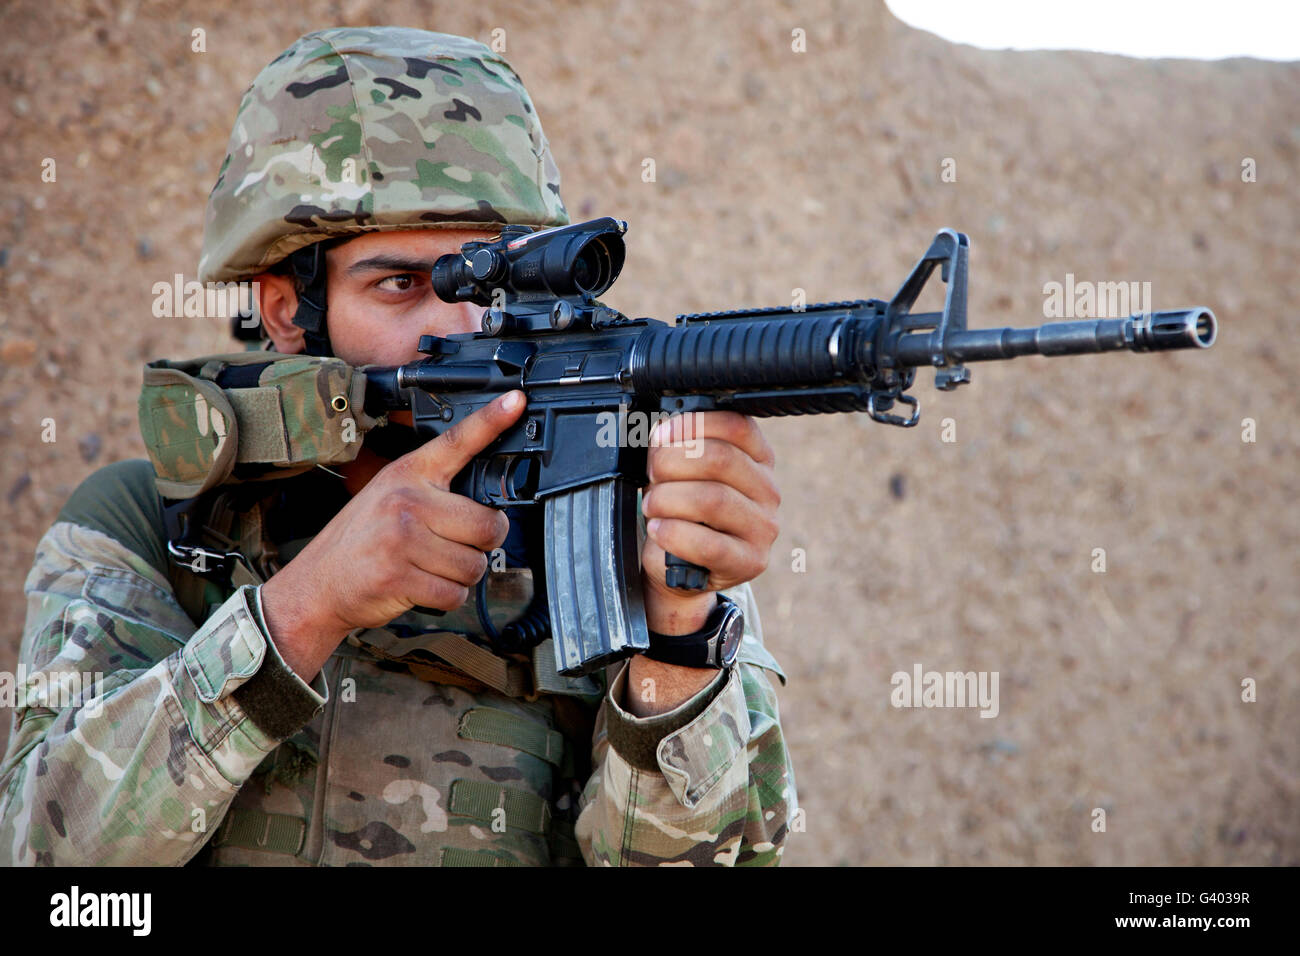 A Georgian Army soldier surveys the surrounding area. - Stock Image